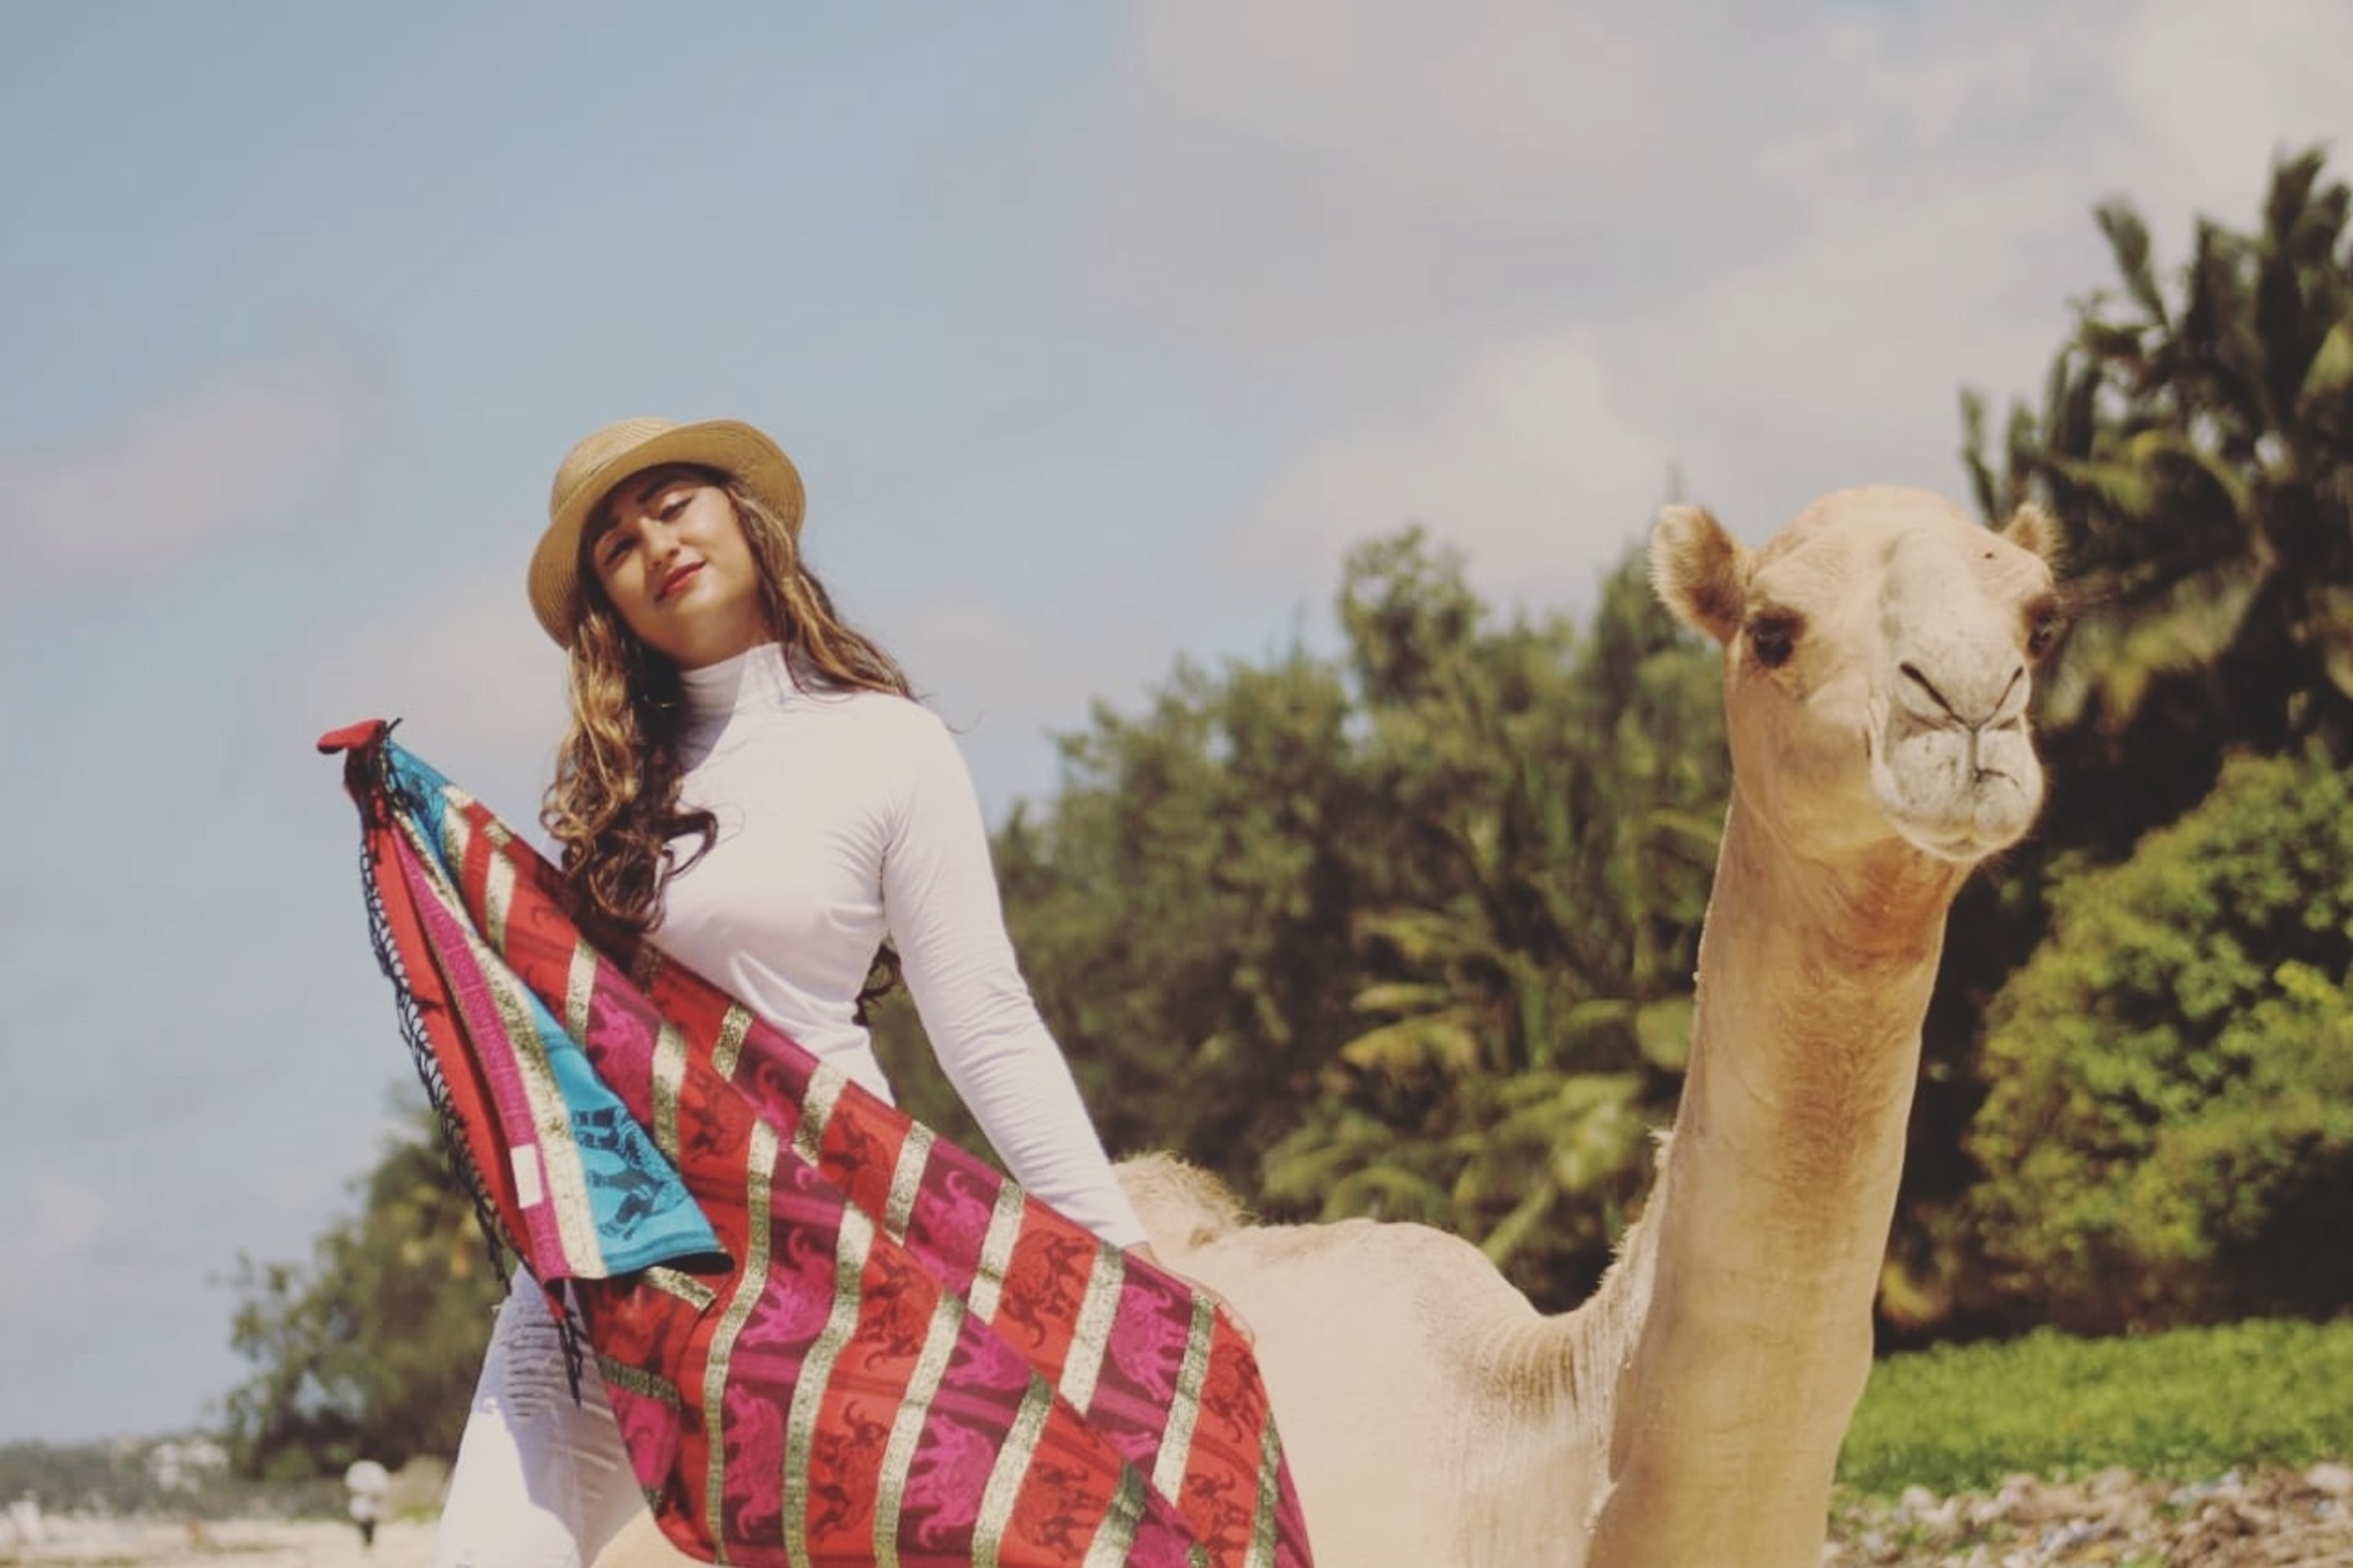 selective focus photography of woman standing beside brown camel during daytime